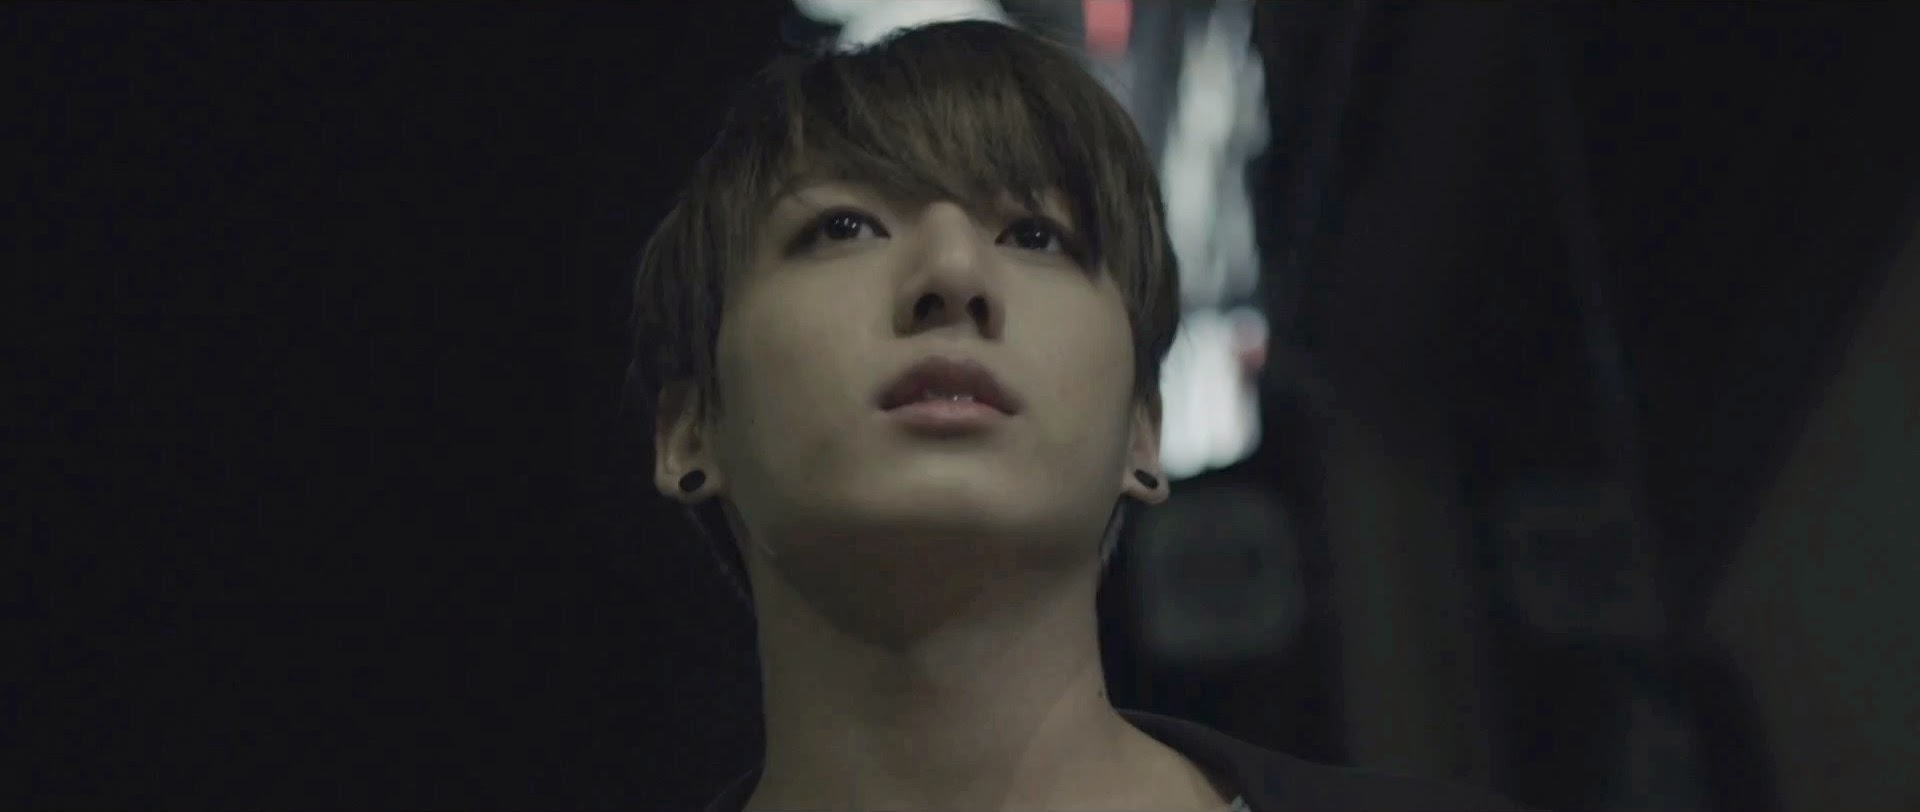 Bangtan's Jungkook in I Need You MV